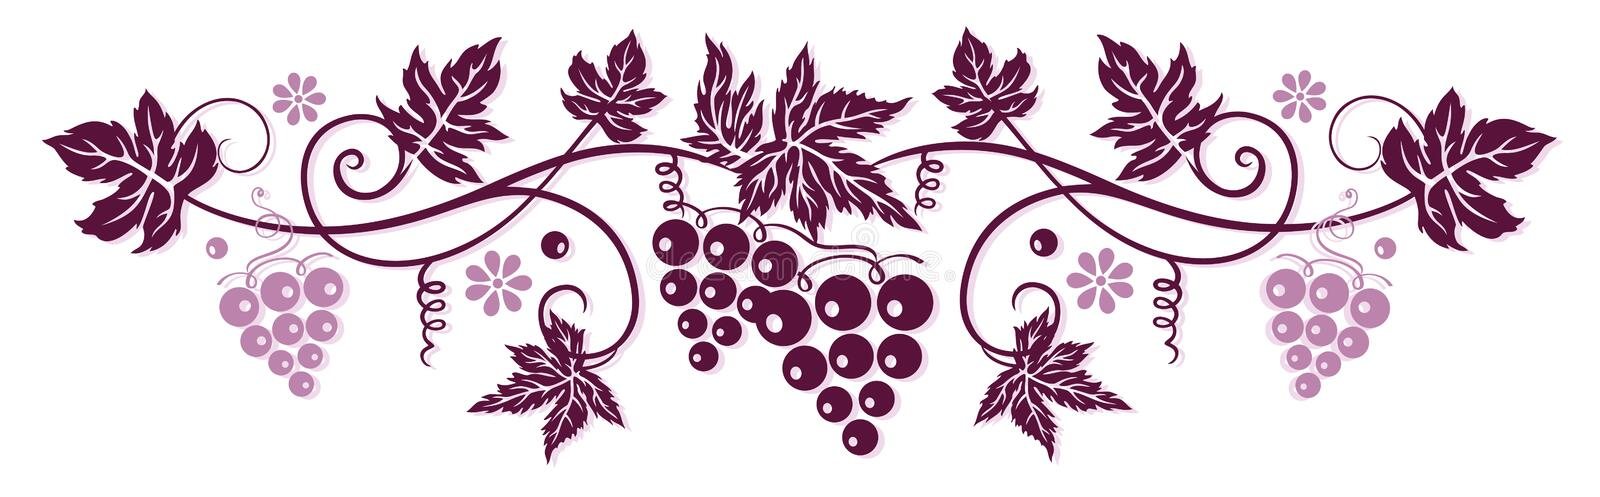 Vine with grapes royalty free illustration